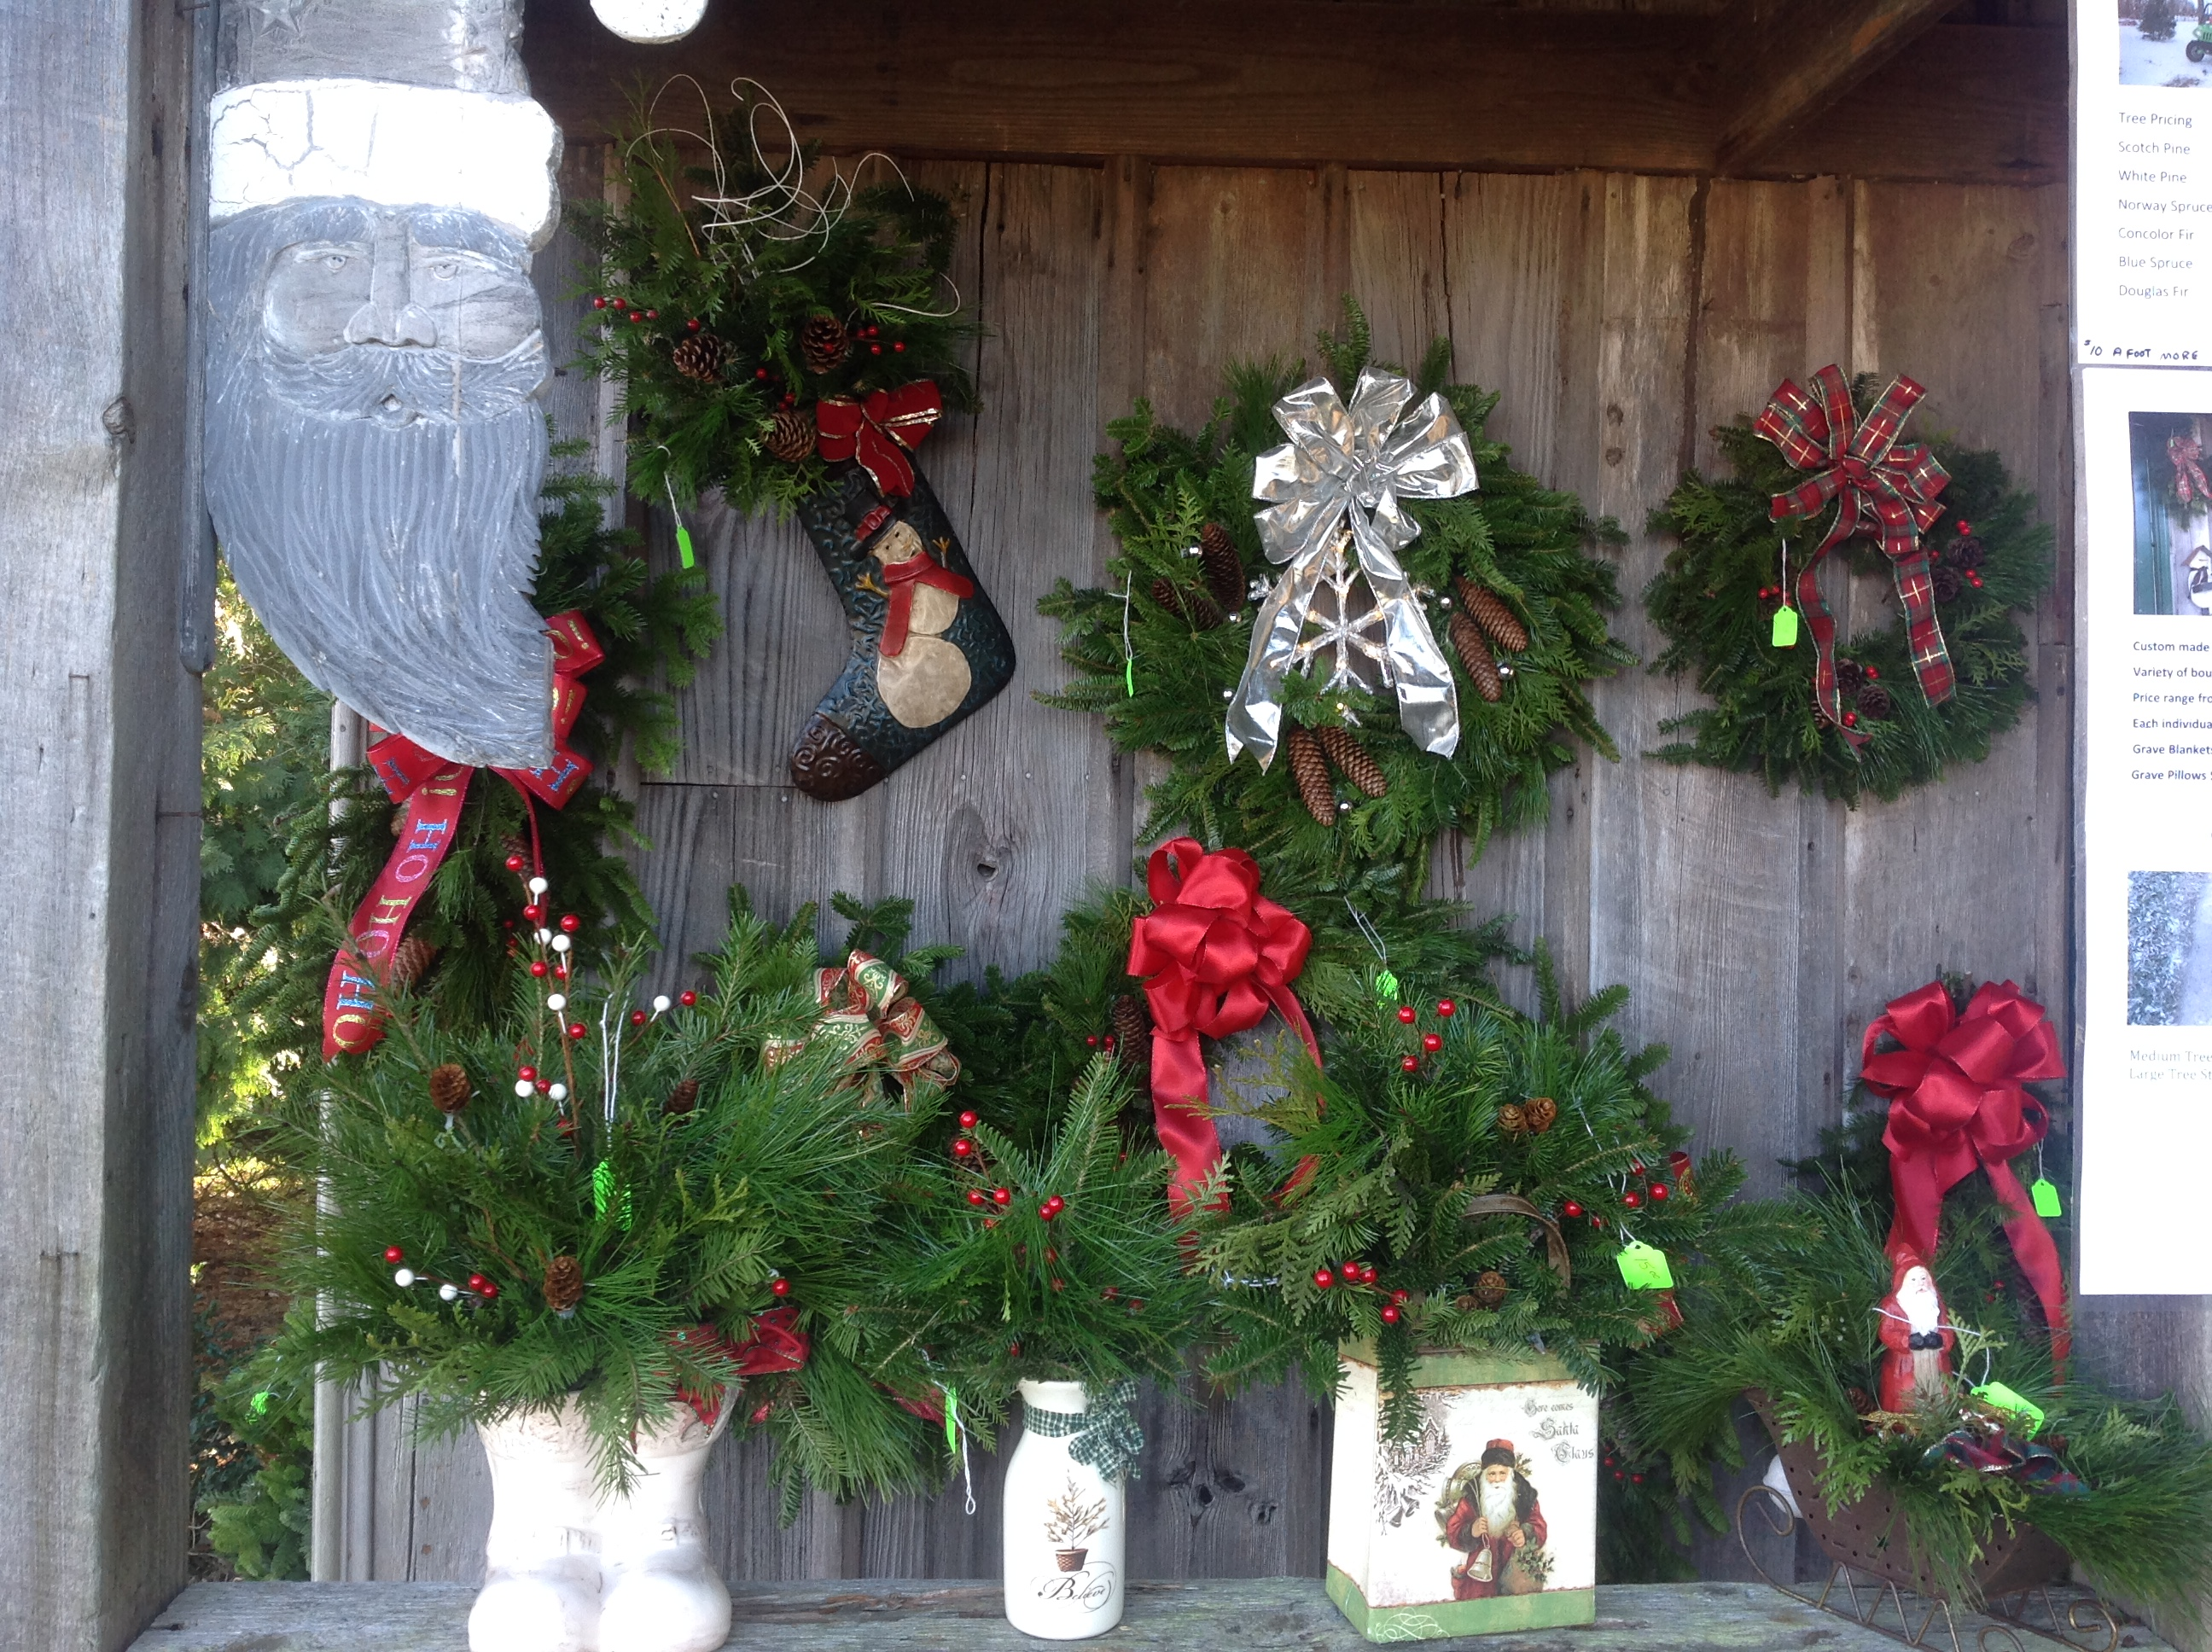 Christmas Grave Blankets For Sale Near Me.Wreaths Swags And Grave Blankets